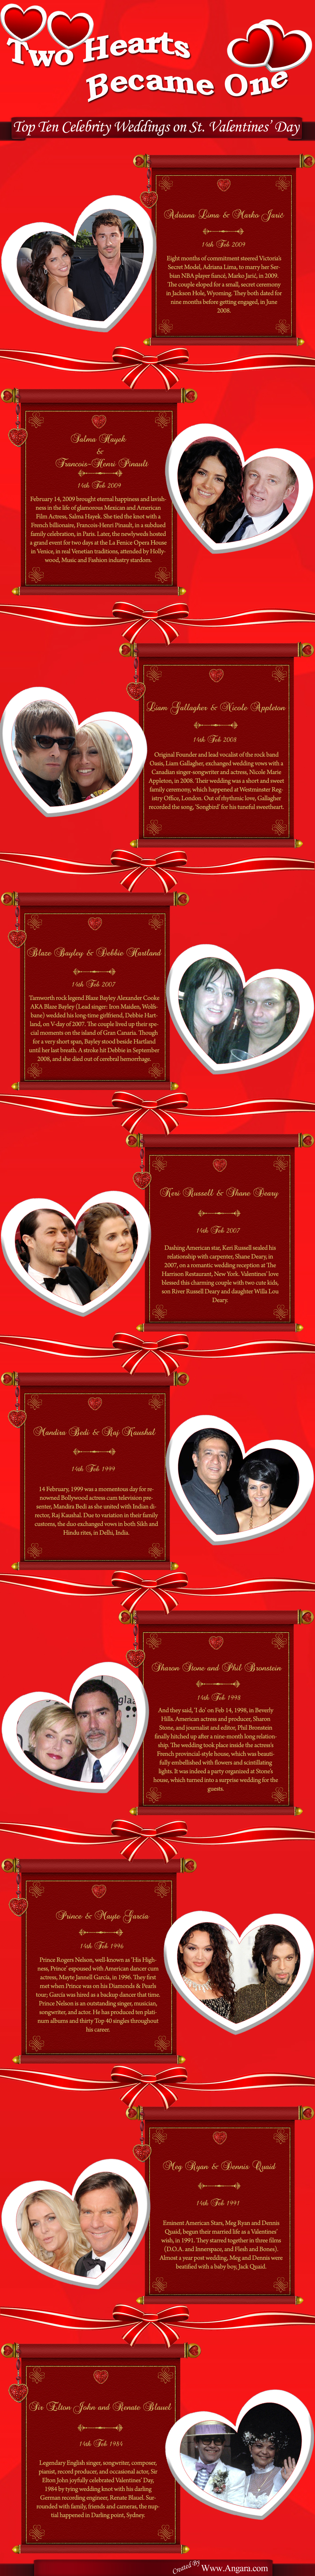 Top 10 Celebrity Weddings on St. Valentines' Day